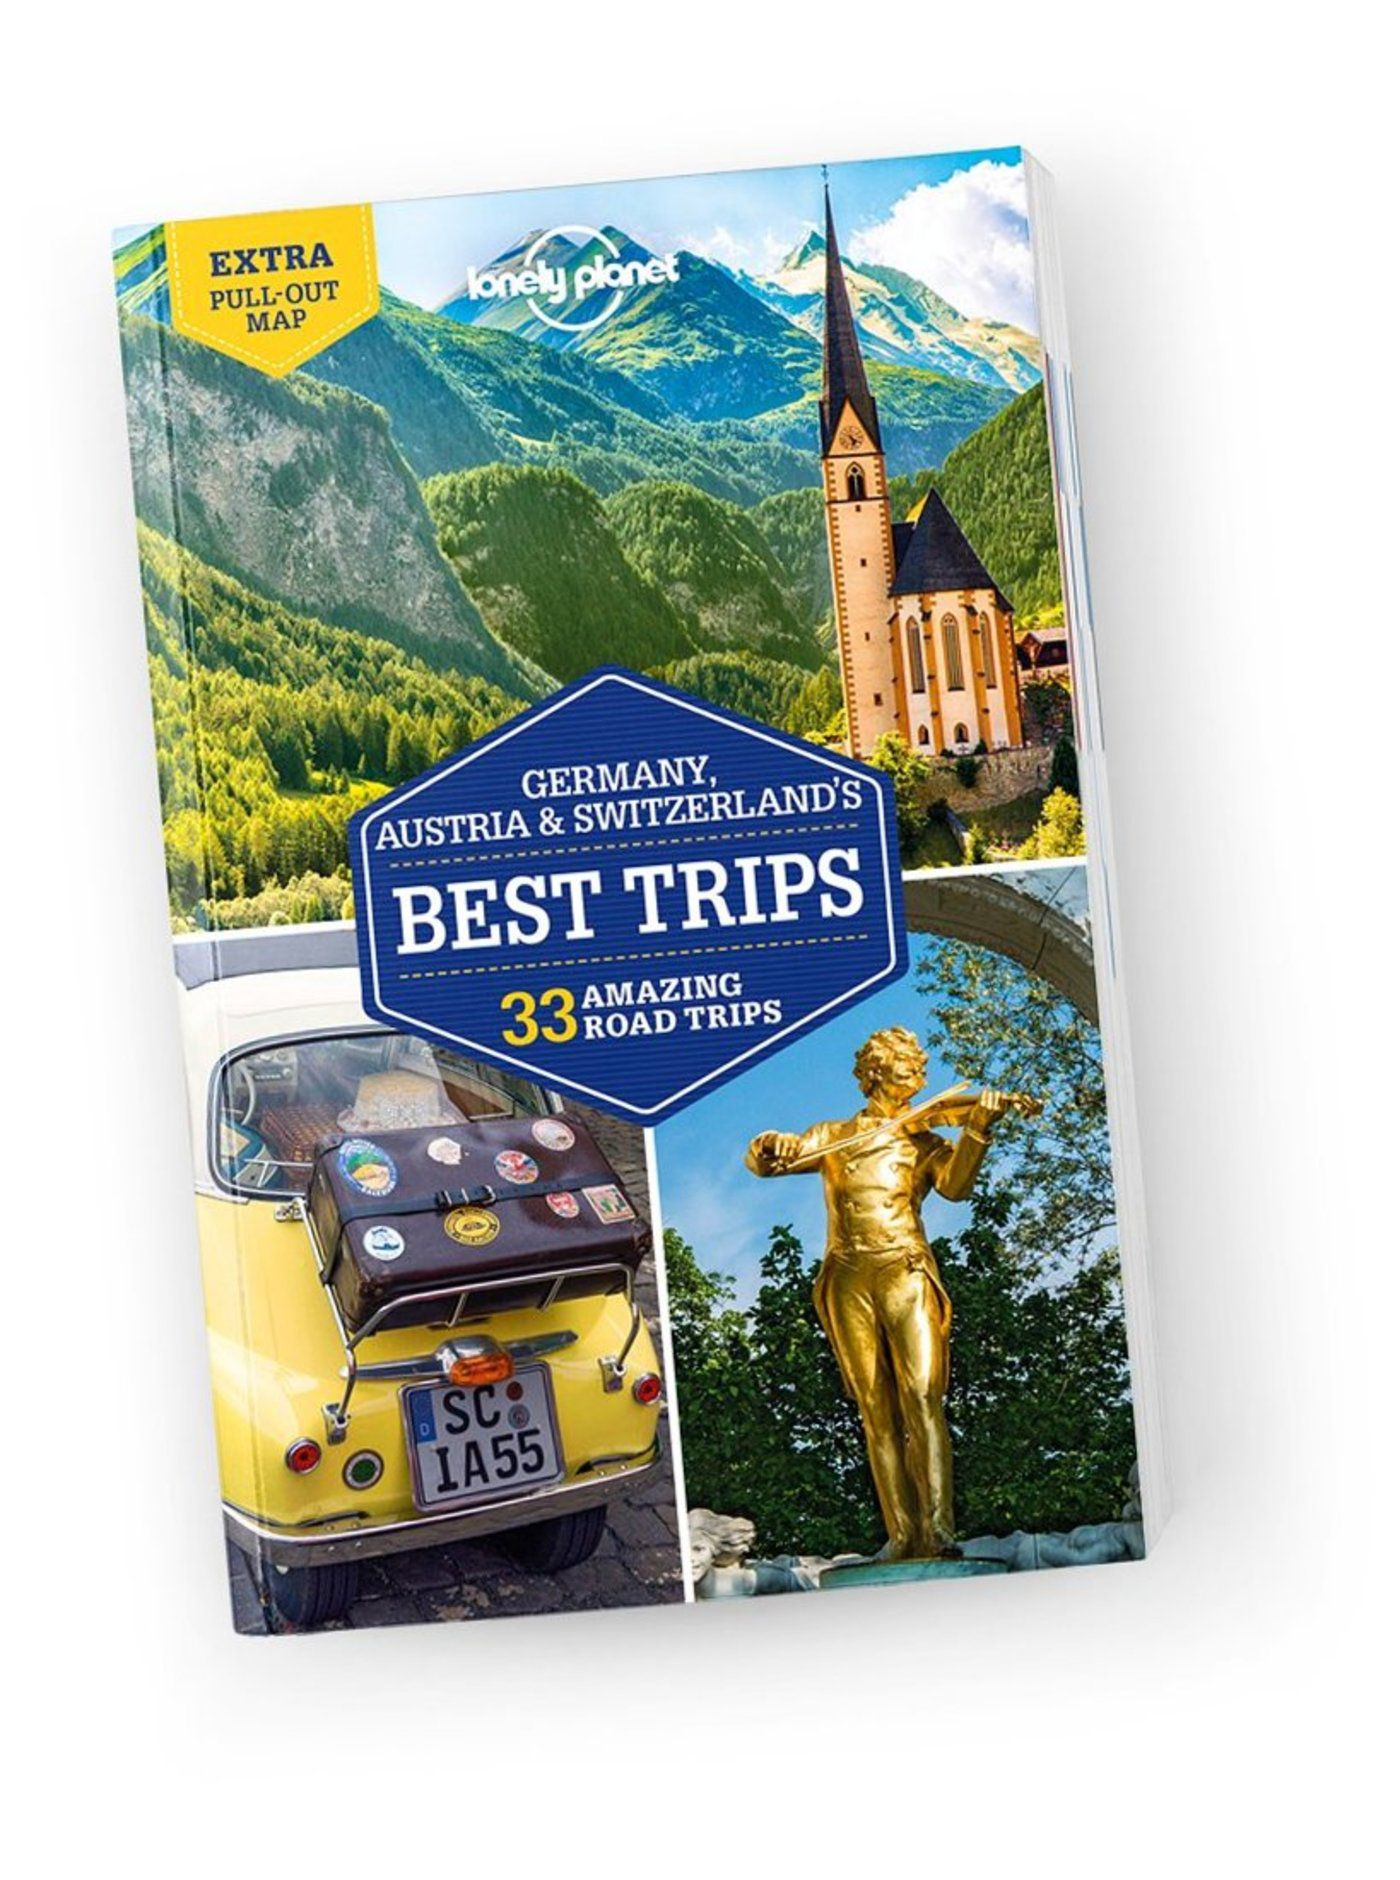 Germany, Austria & Switzerland's Best Trips - 2nd edition